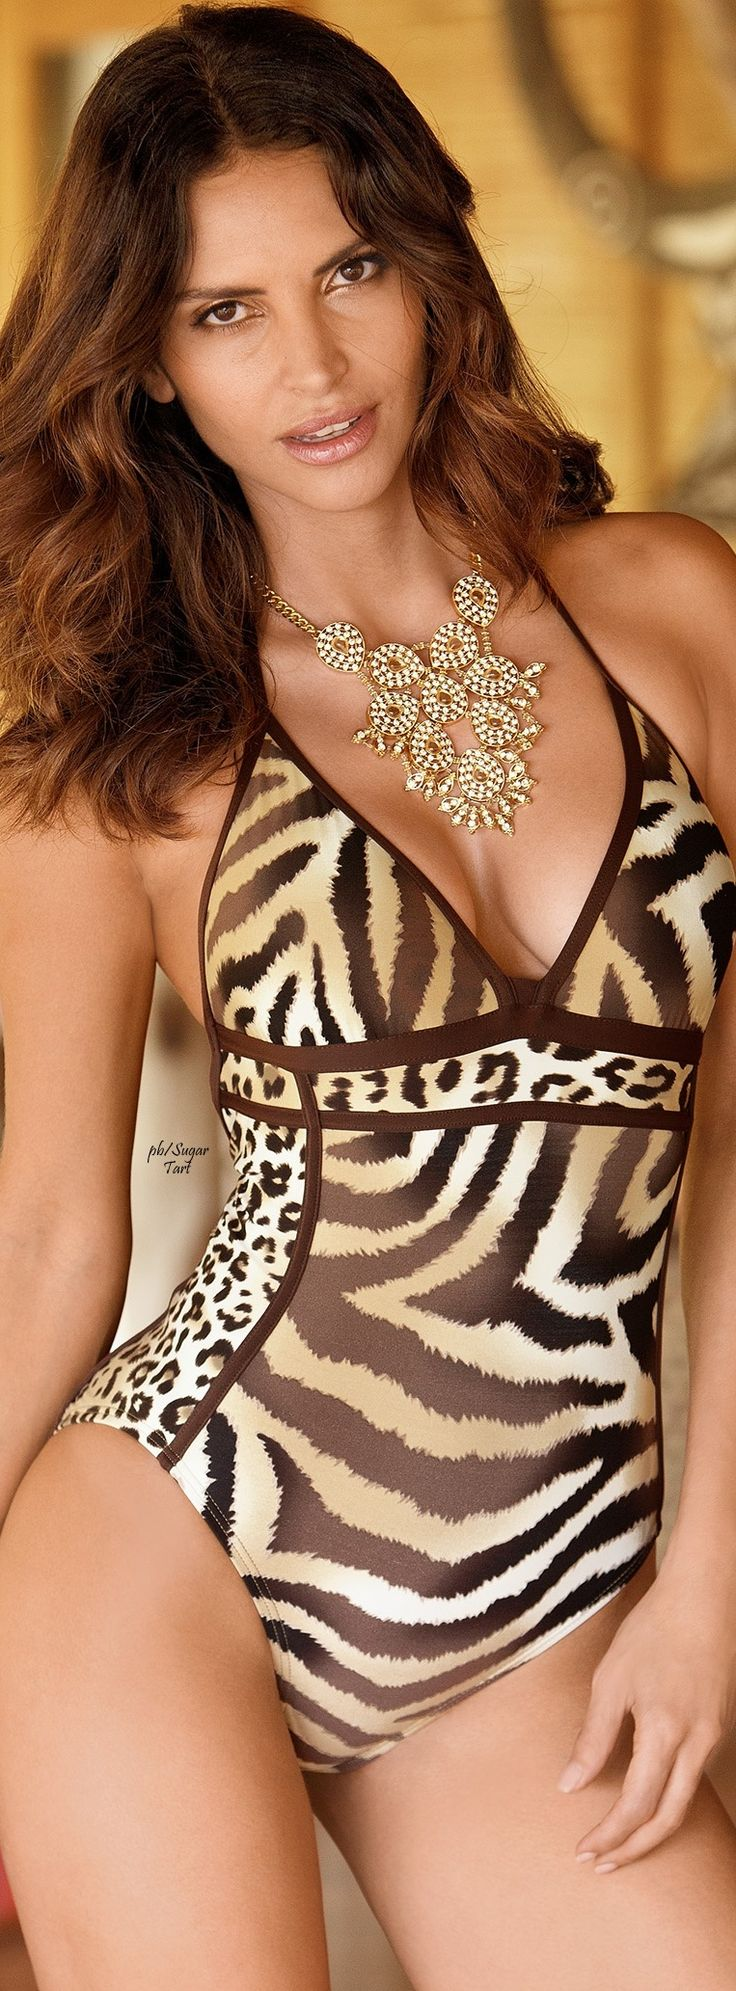 Animal print swimsuit - If only I had this body.... I would wear this in a heartbeat!!